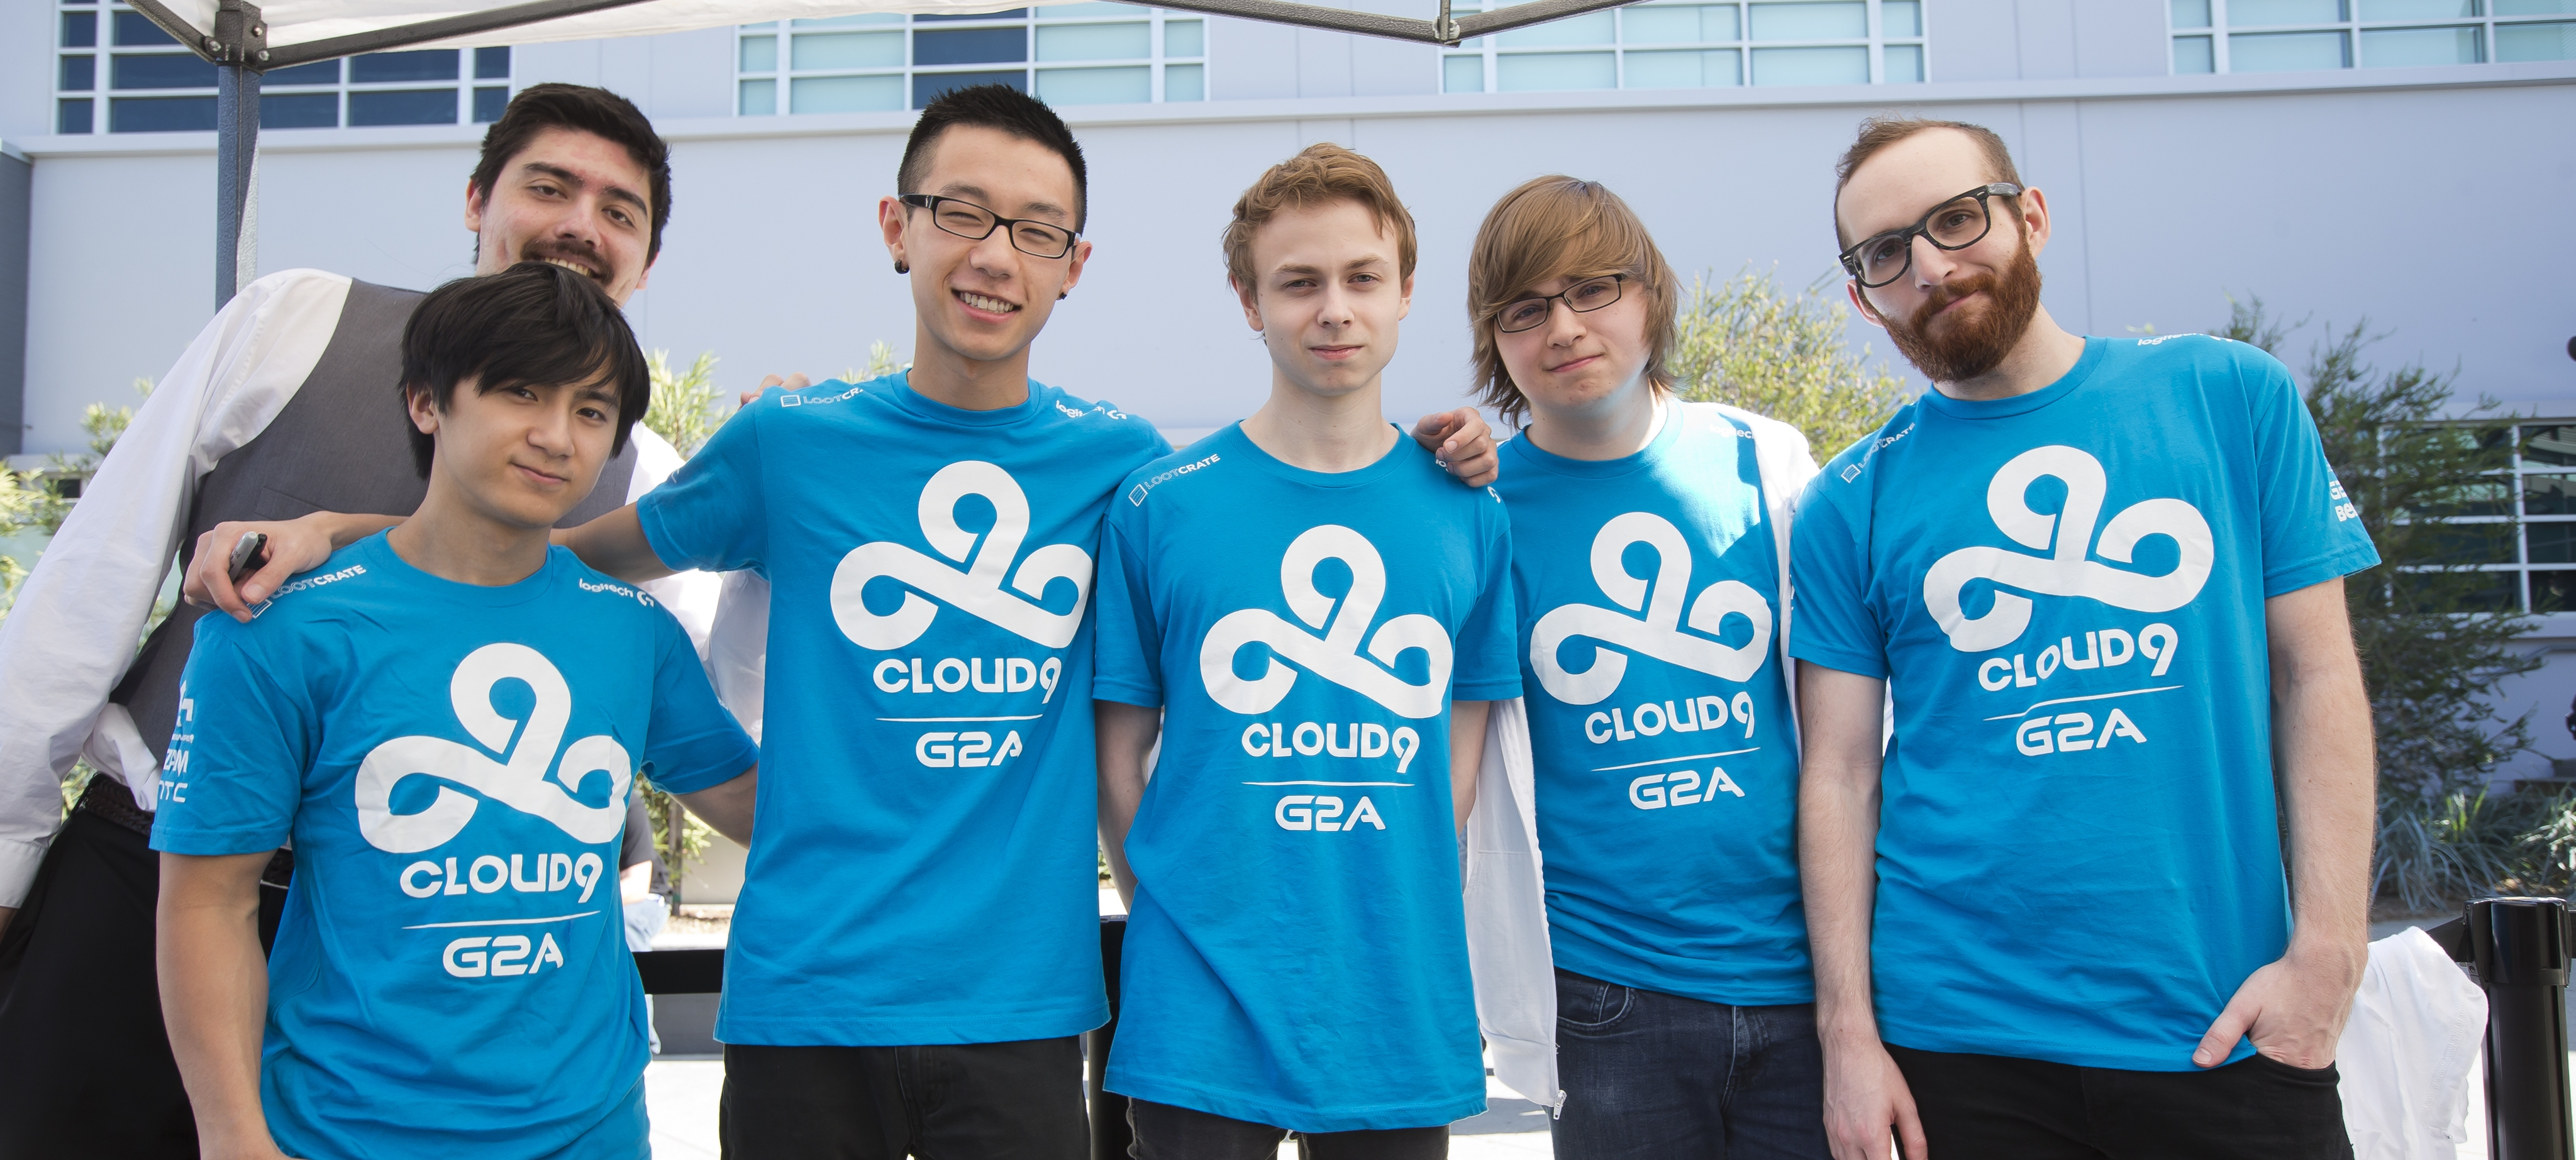 2 8 Million Us Dollars Has Been Invested In Cloud9 League Of